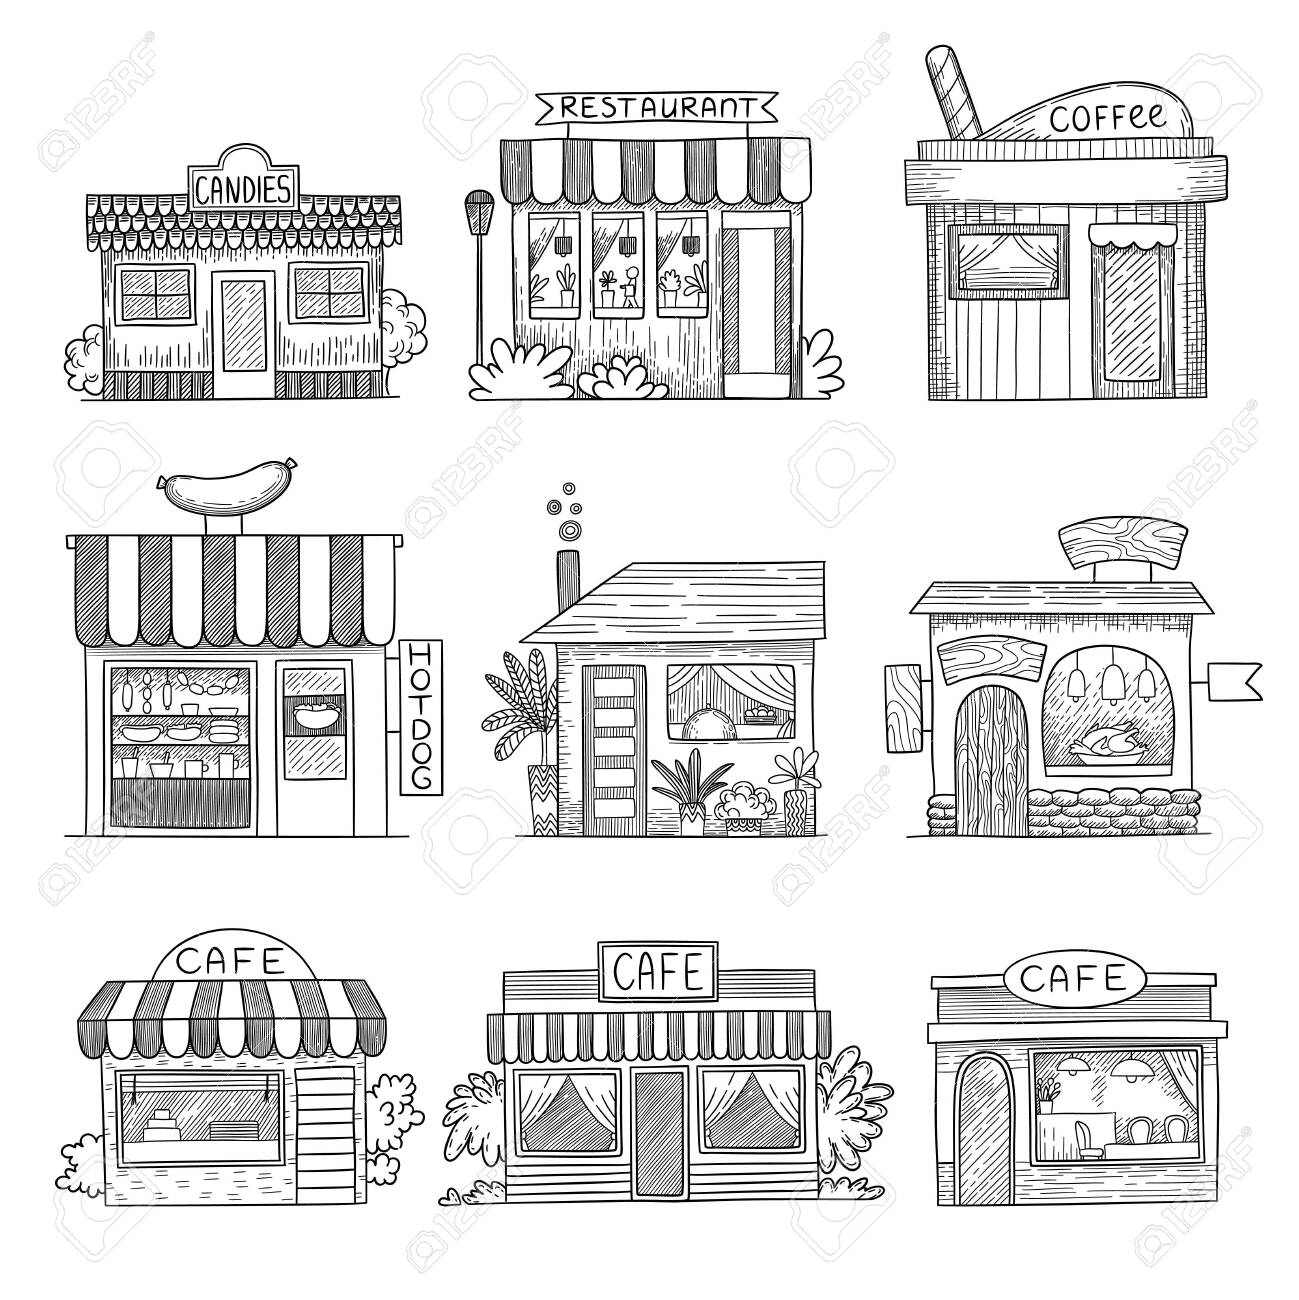 Cafe Buildings Hand Drawn Shop Restaurants Small Vector Buildings Royalty Free Cliparts Vectors And Stock Illustration Image 140902572